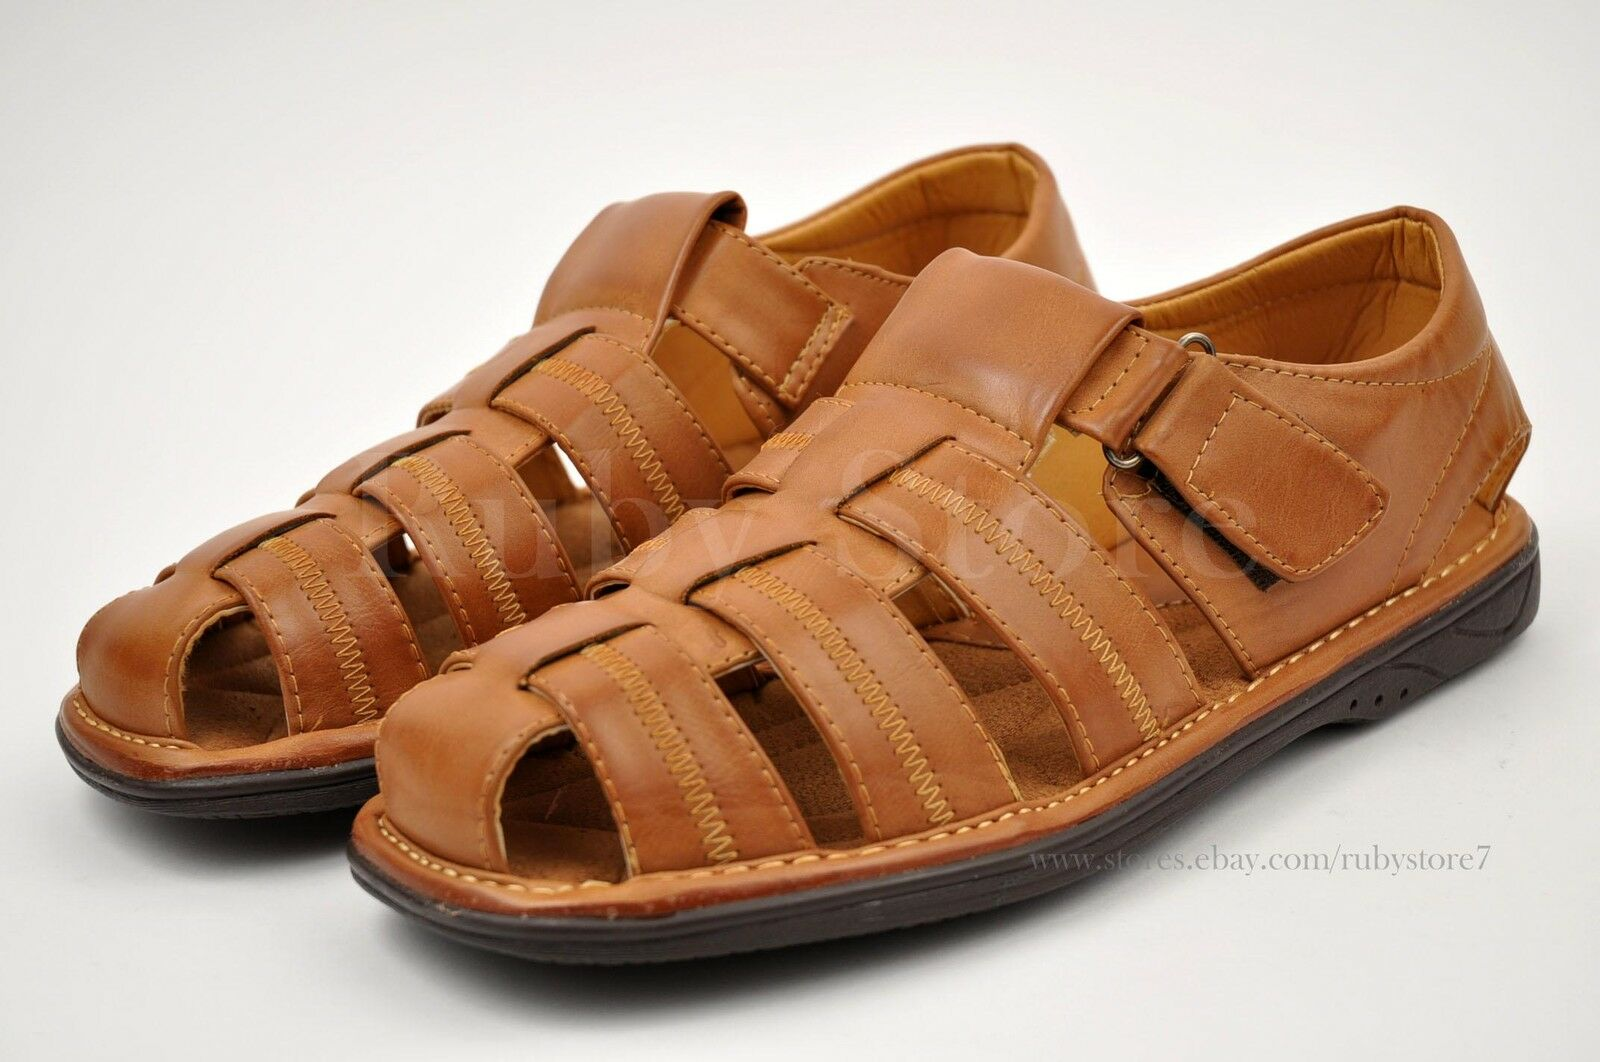 Faranzi men 39 s cognac sandals slippers shoes fisherman for Mens fishing sandals